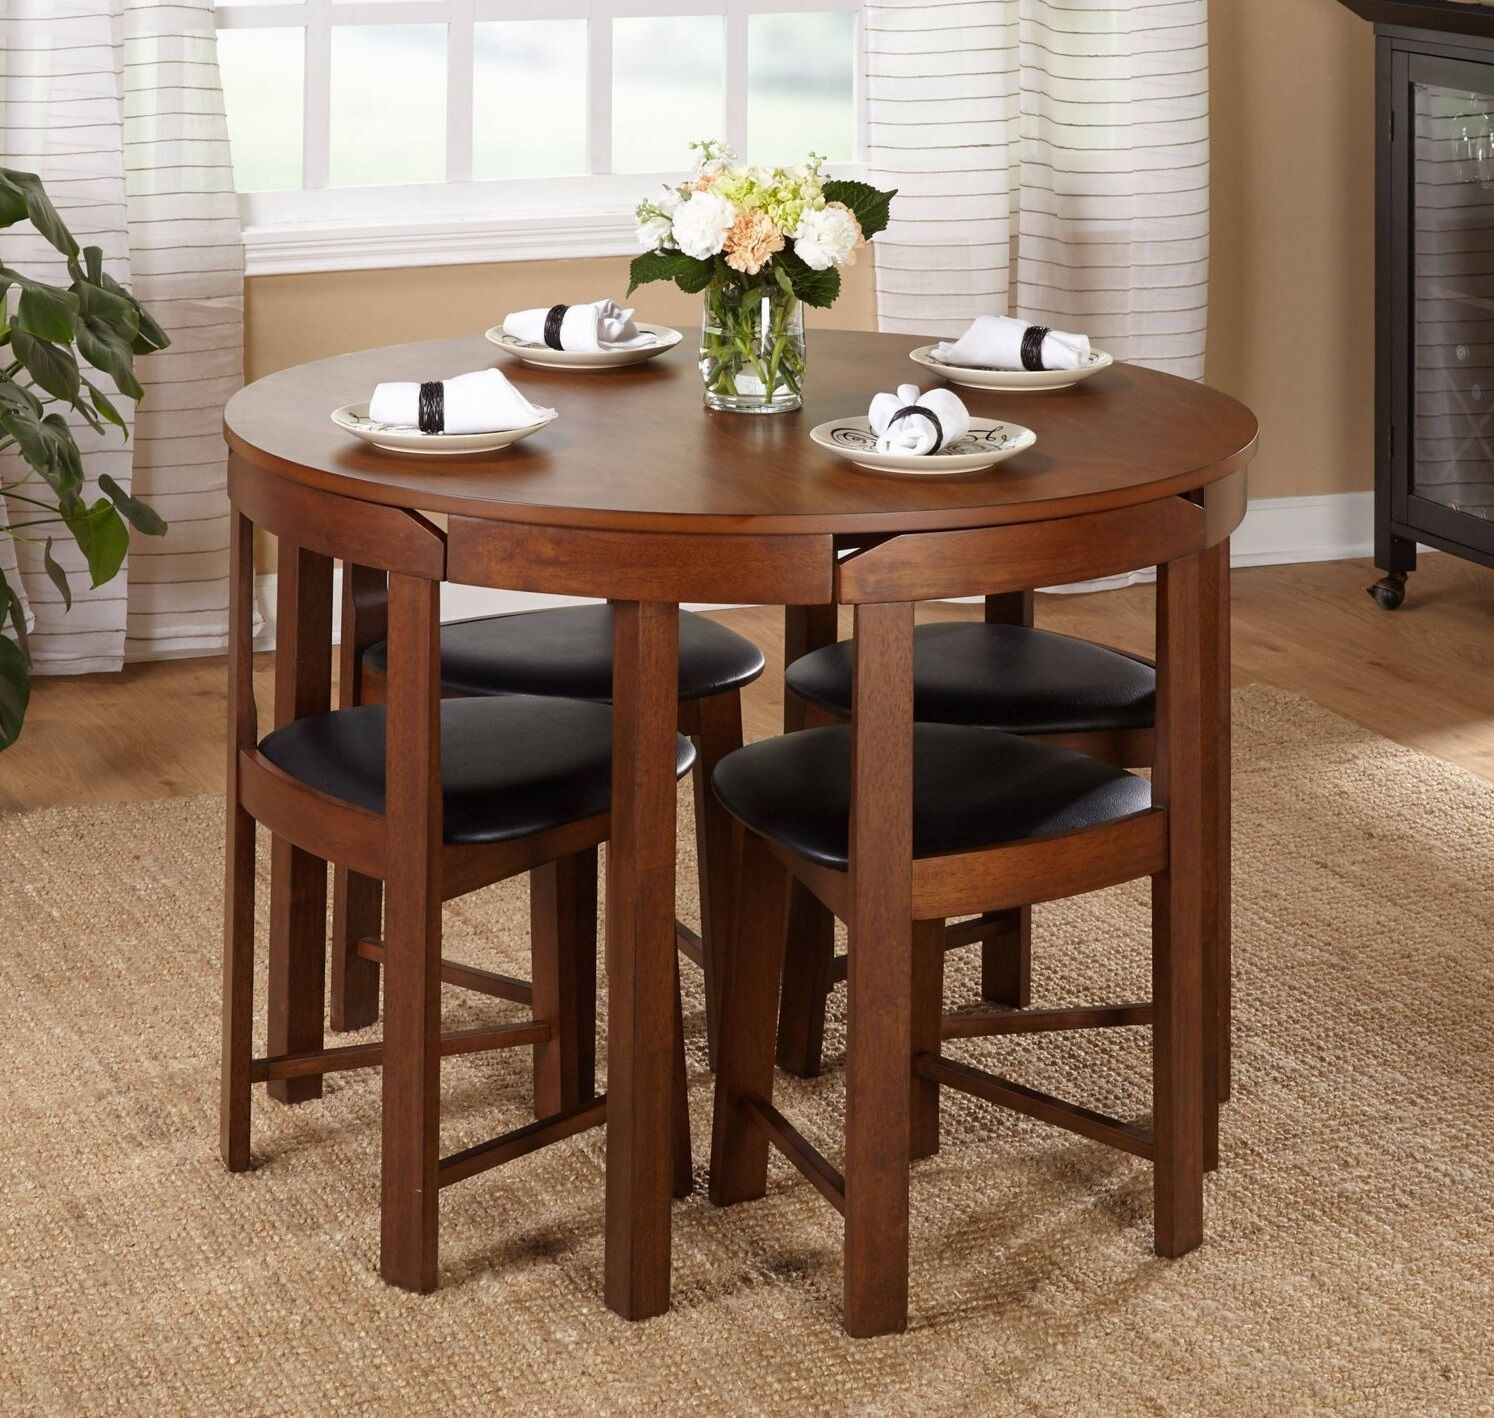 Dinette Bench Seating: Modern 5pc Dining Table Set Kitchen Dinette Chairs